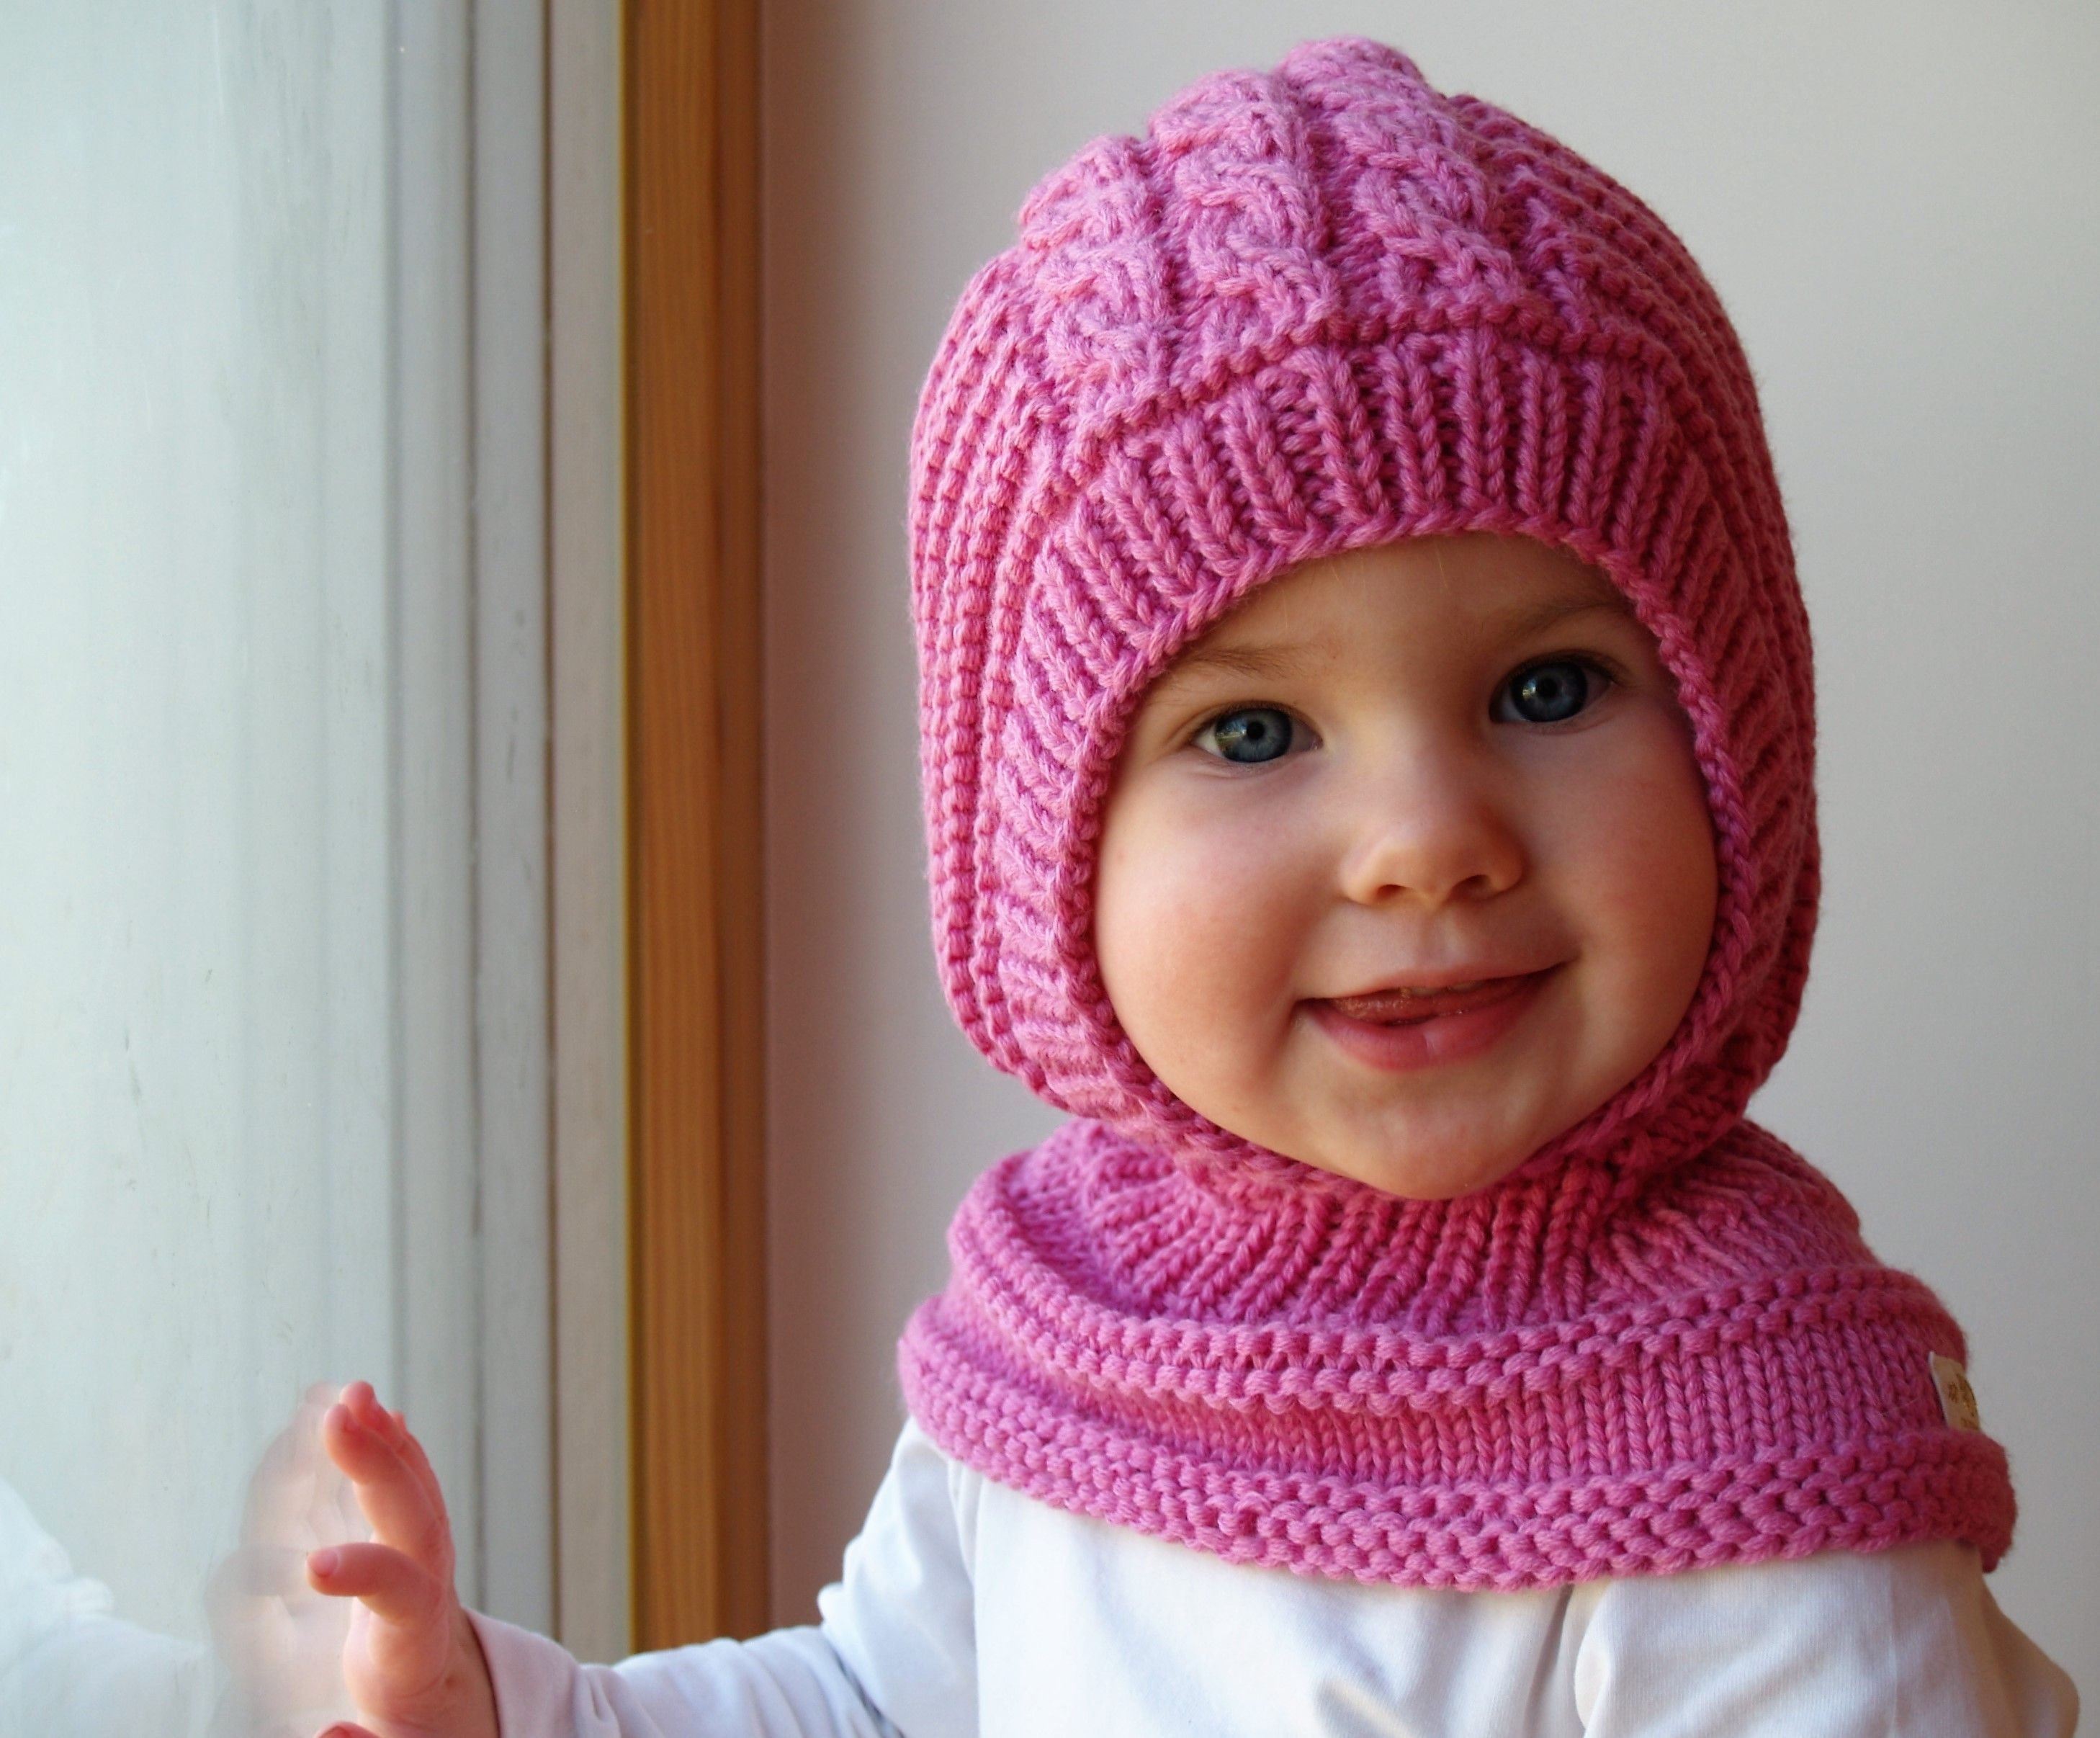 6b73c3b472f Waldorf inspired winter and snow hat. Hand knitted hoodie   balaclava hat  for baby